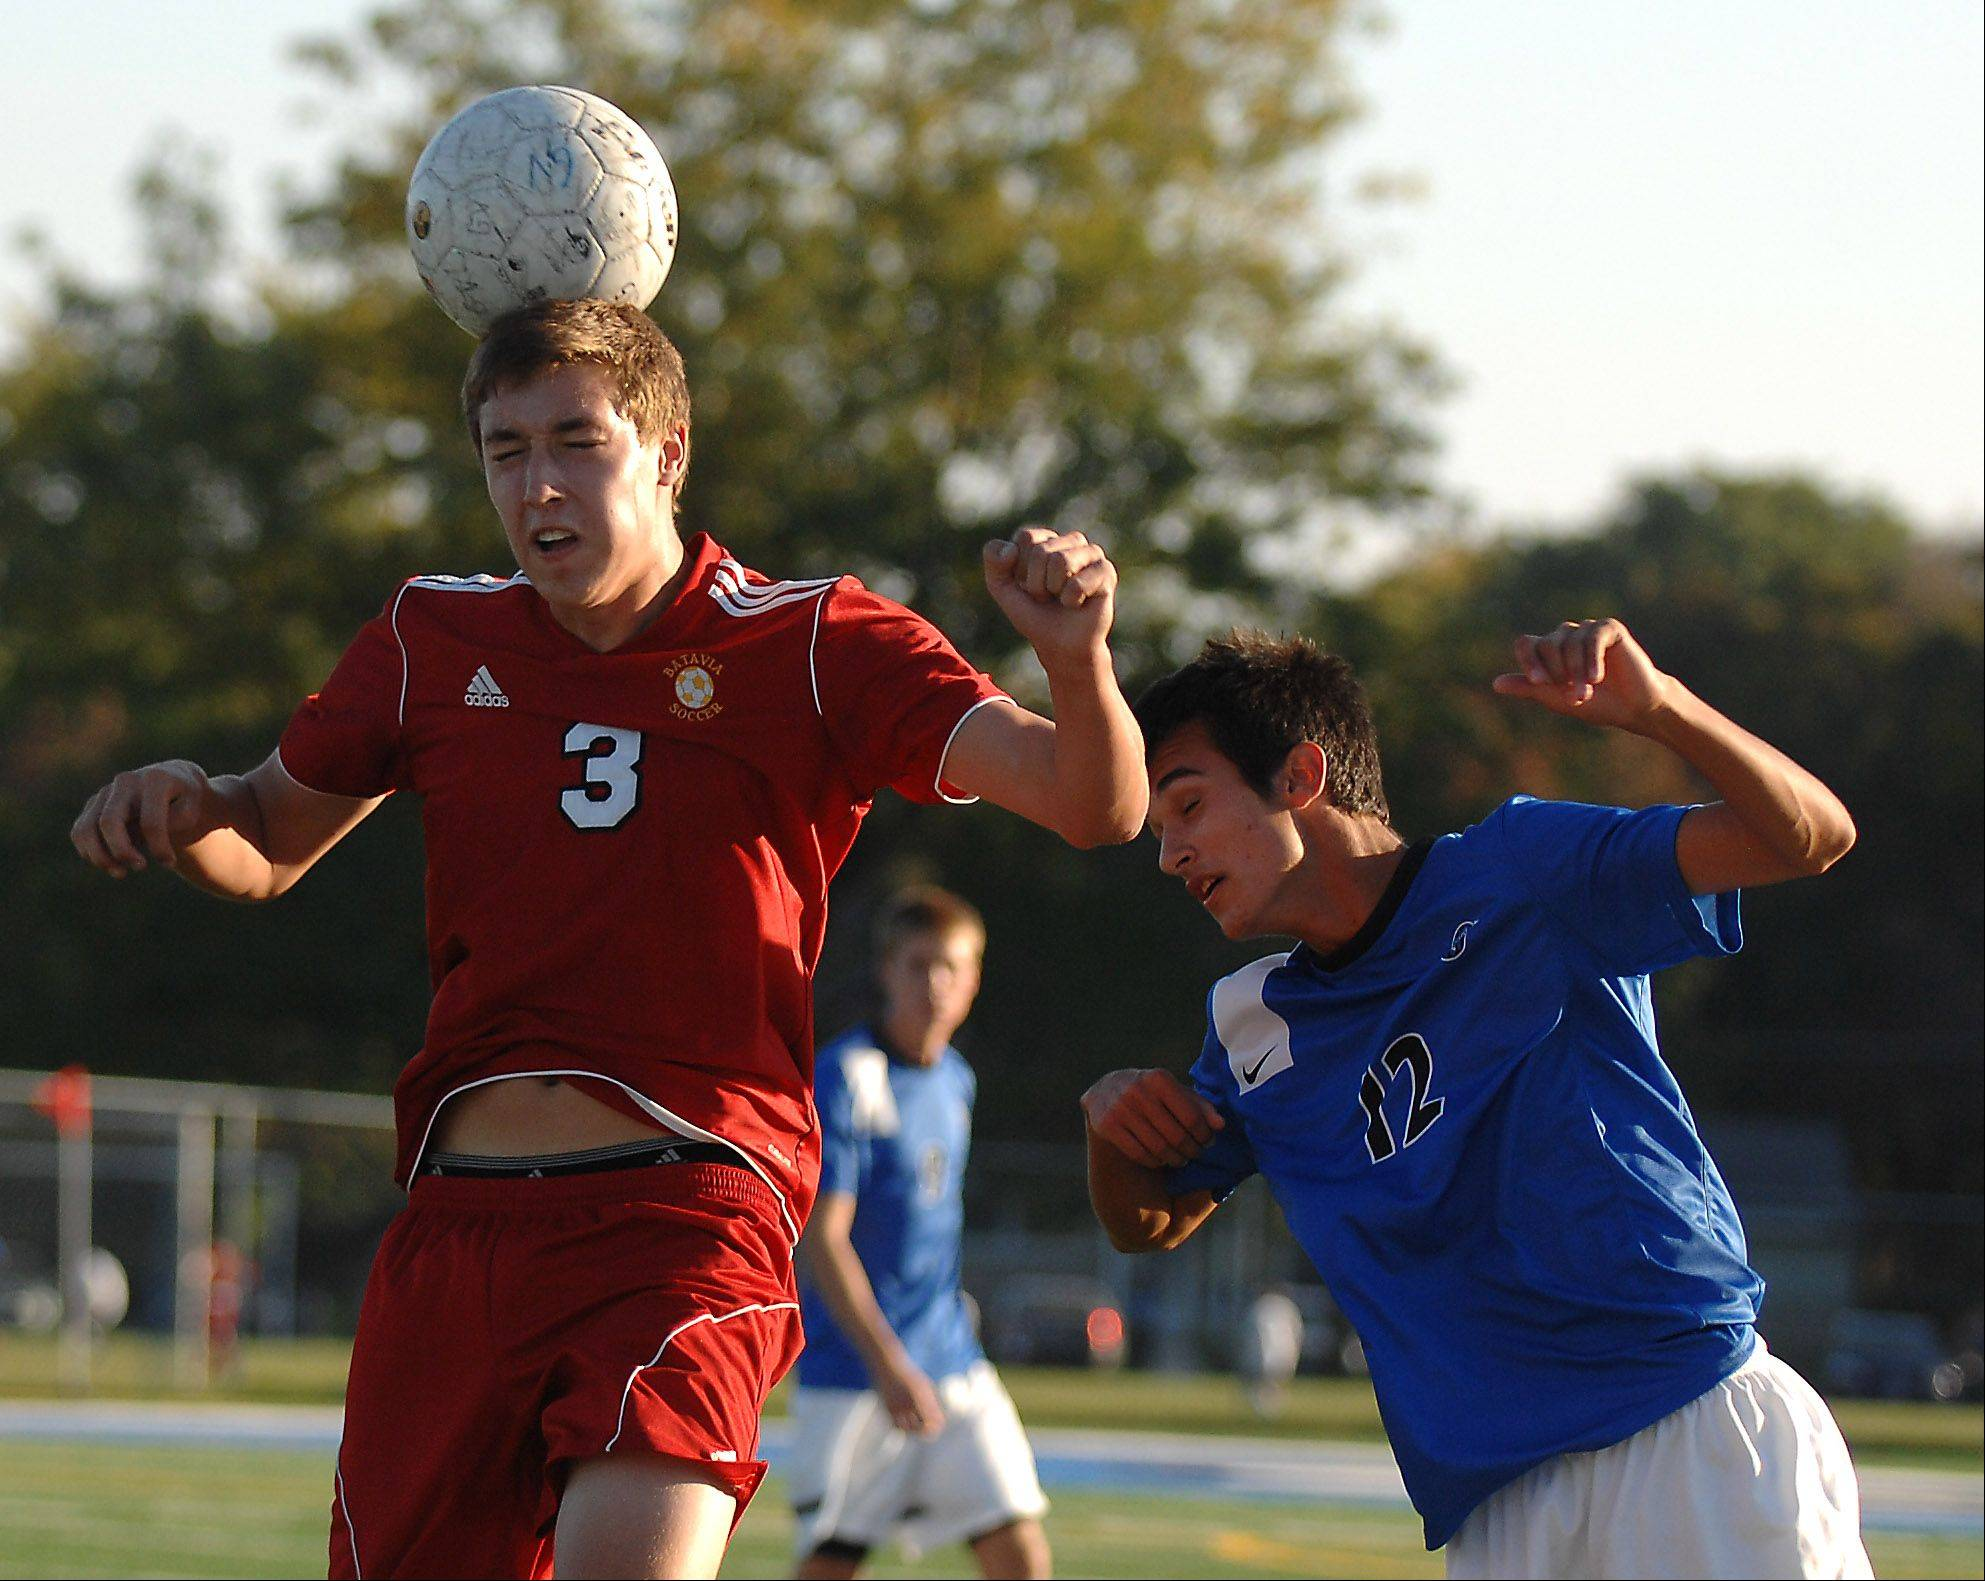 Batavia's Kevin Collins flicks a header on while being defended by St. Charles North's Jake Kerr during Tuesday's action at the Tri-Cities boys soccer challenge in Geneva.